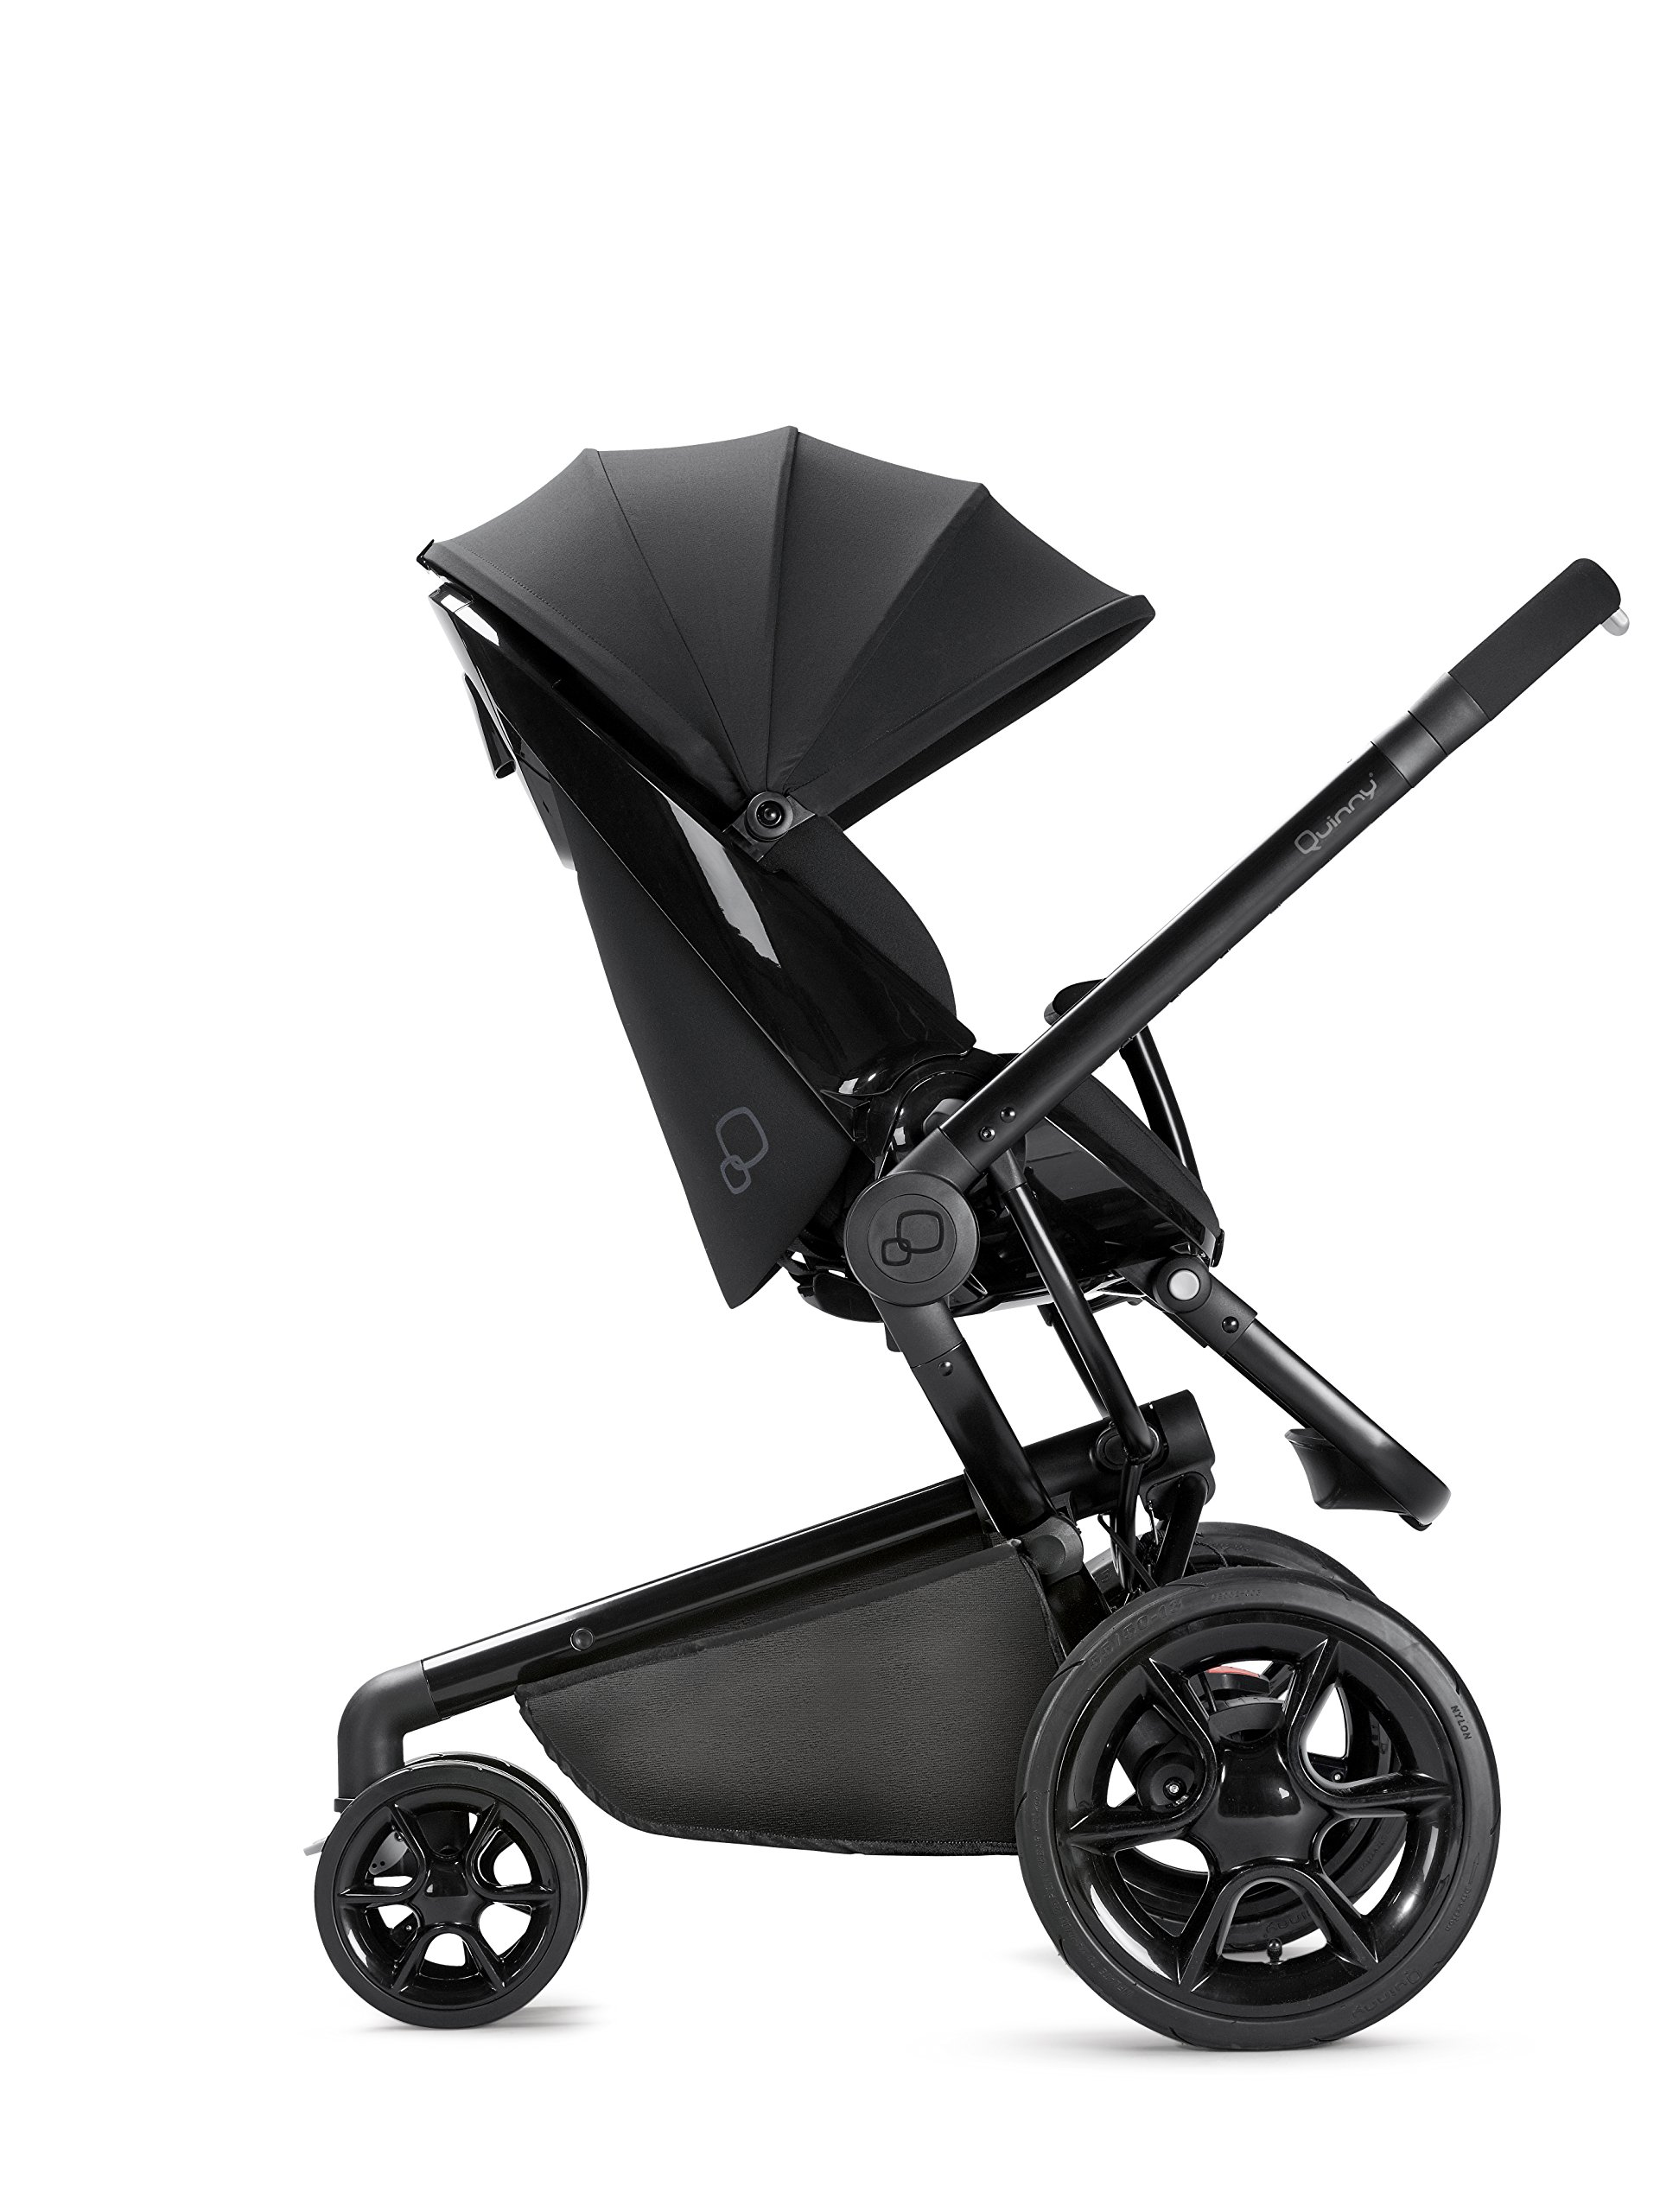 Quinny Moodd Pushchair Frame, Black Devotion Maxi-Cosi Stylish urban pushchair with cozy baby nest - suitable from birth to 15 kg (approx. 3.5 years) Foam filled comfort tyres and lockable front swivel wheels for a smooth ride Reversible seat unit with 3 recline position (including lie-flat options for newborns) 5